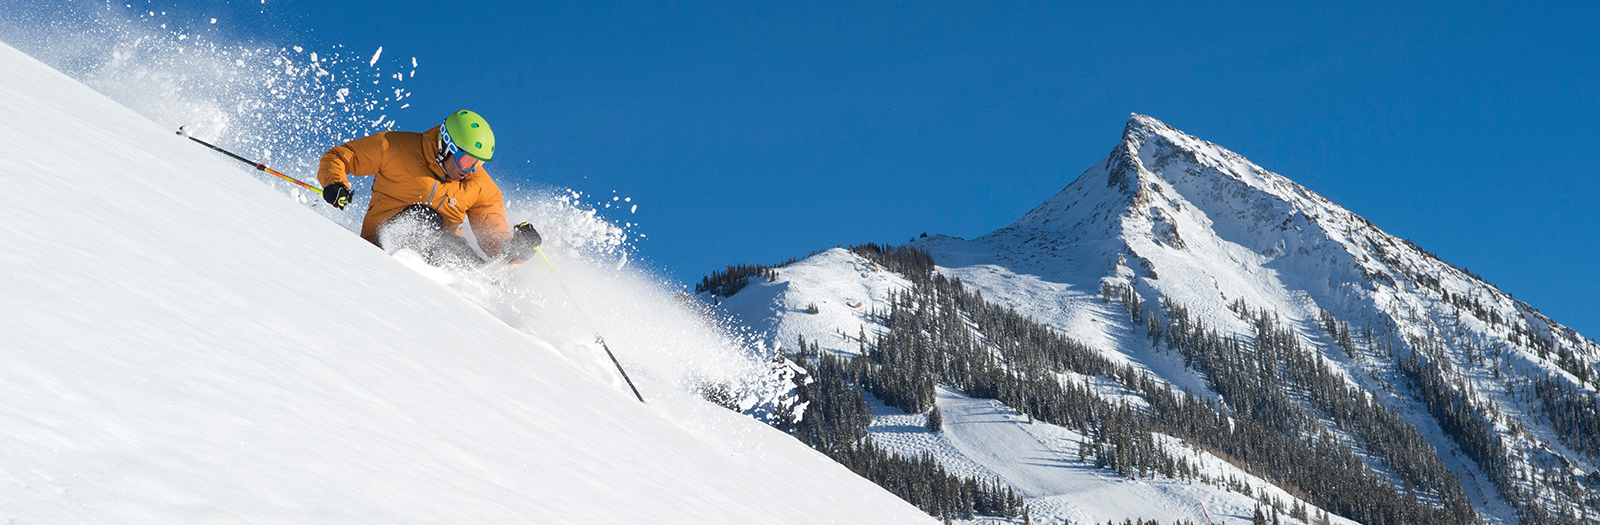 Crested Butte ski lodging package deals hotels condos vacation rentals